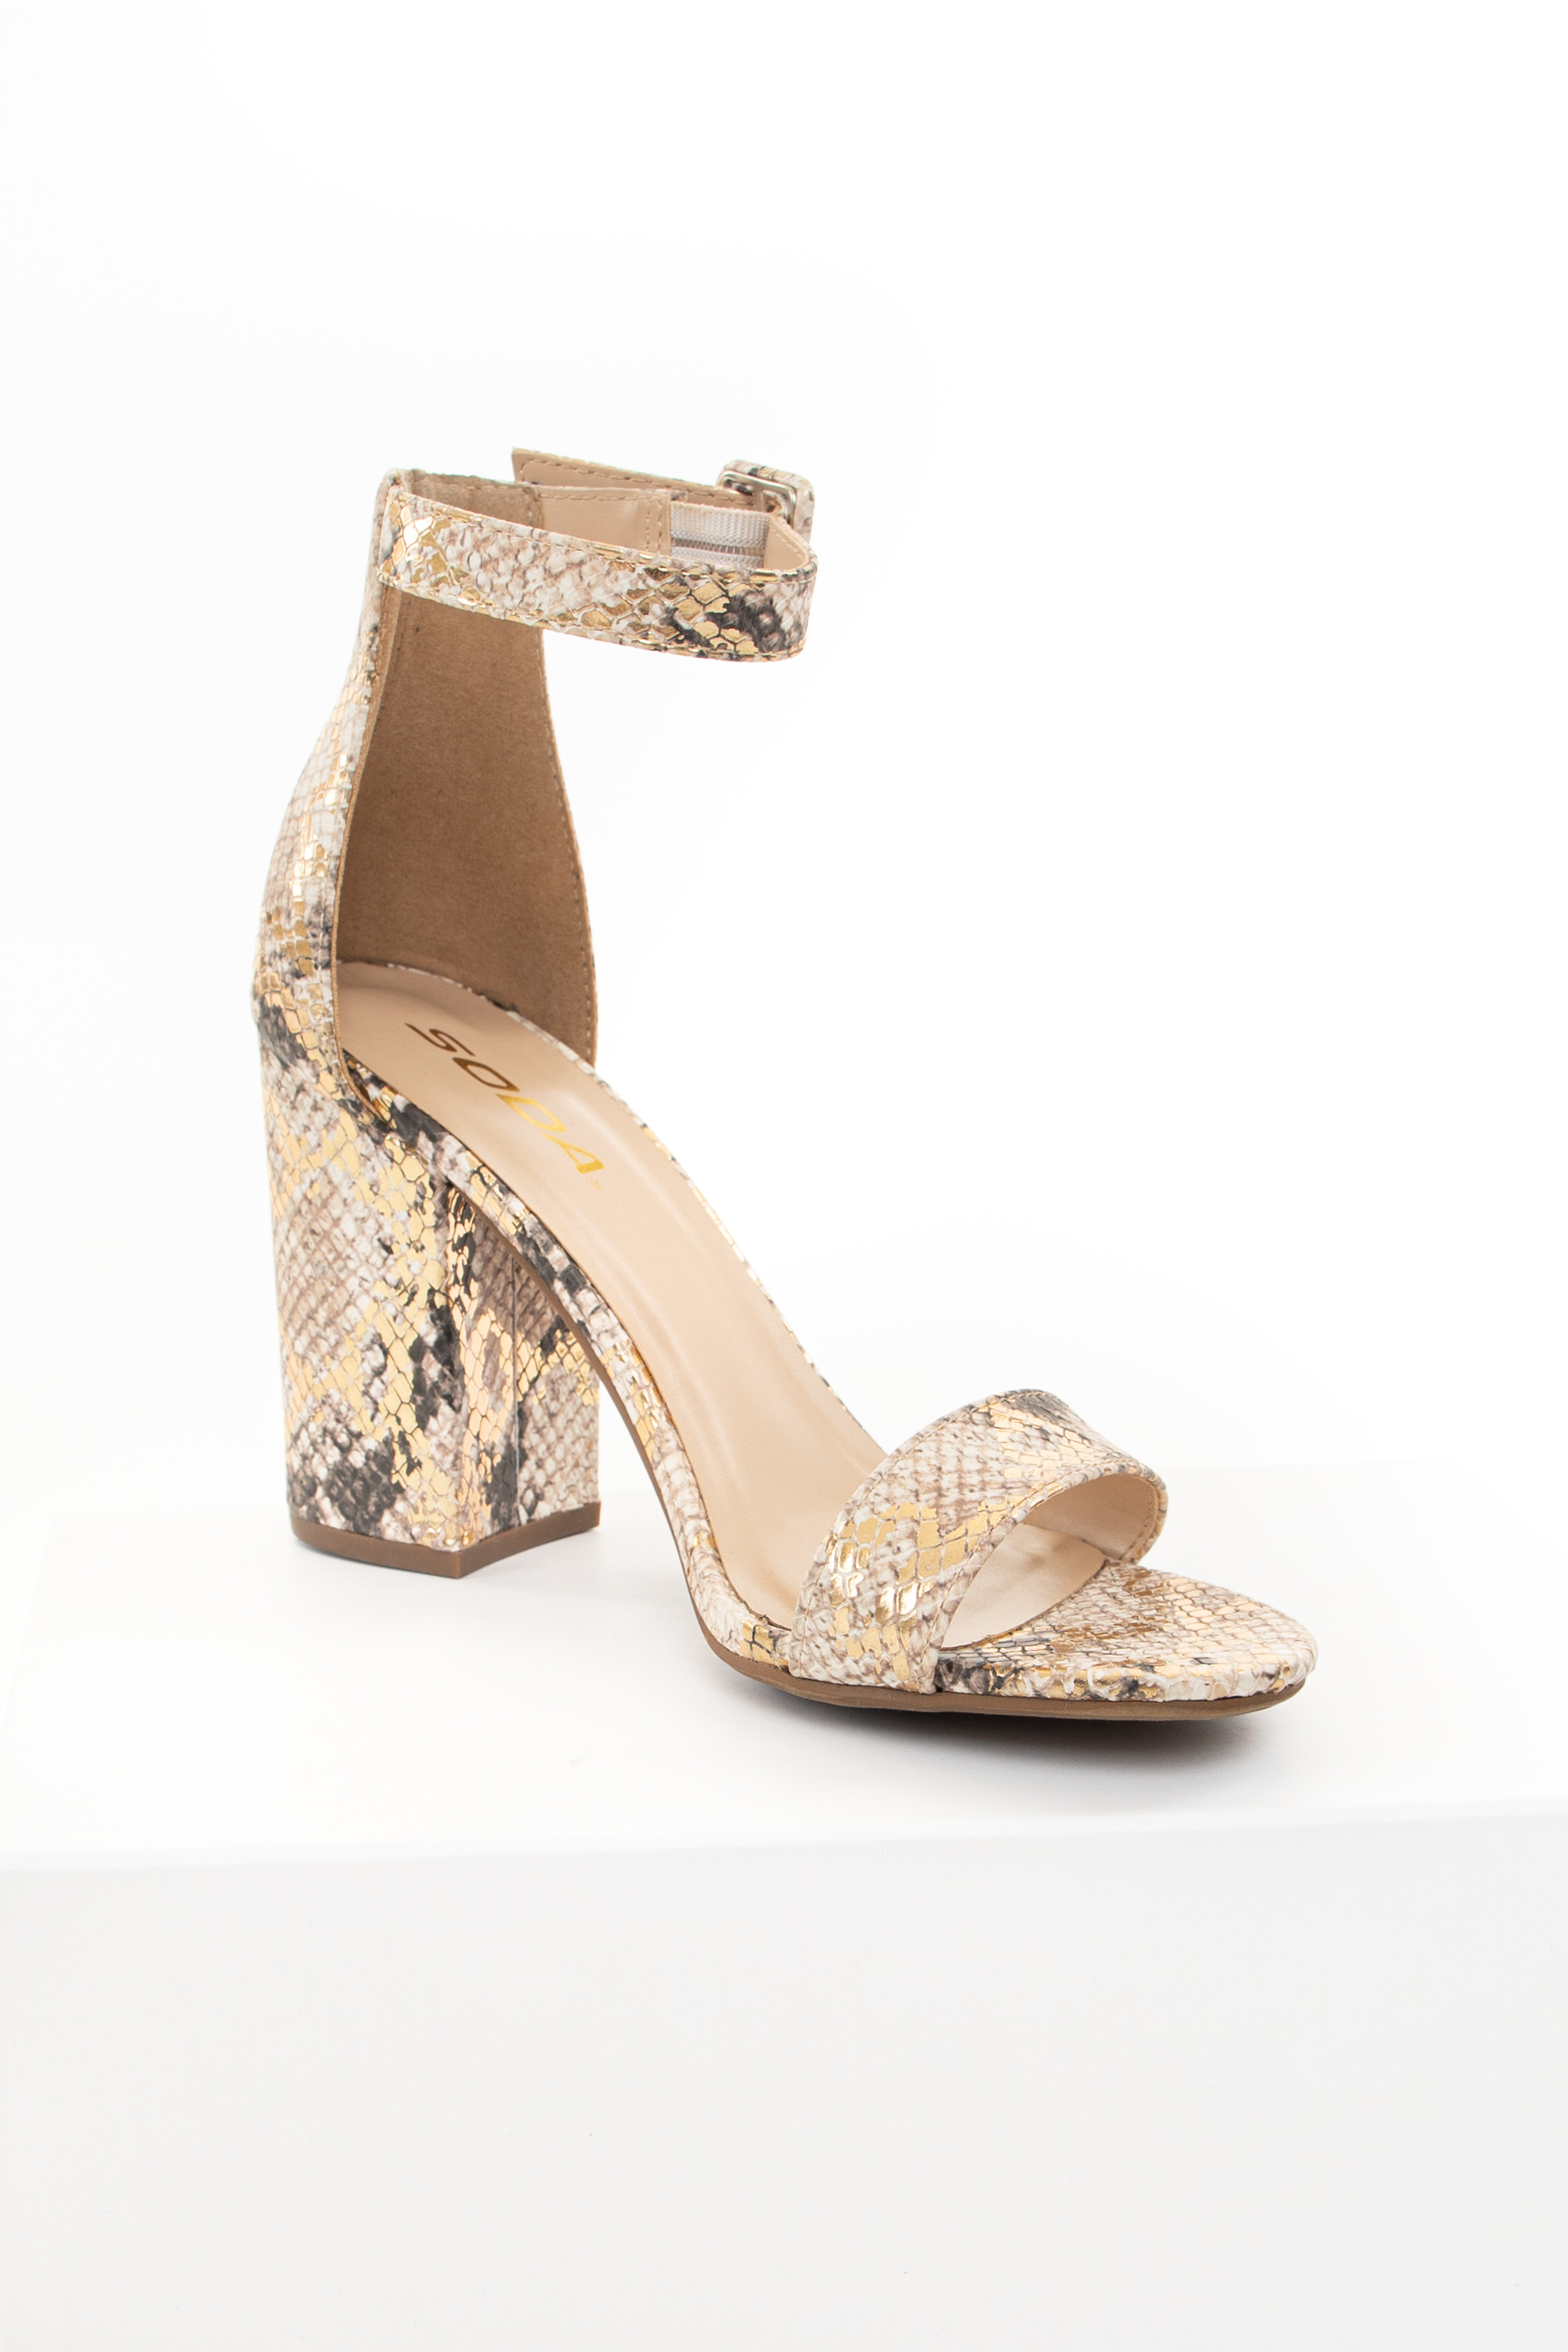 Cream Snakeskin Print Heels with Toe and Ankle Straps